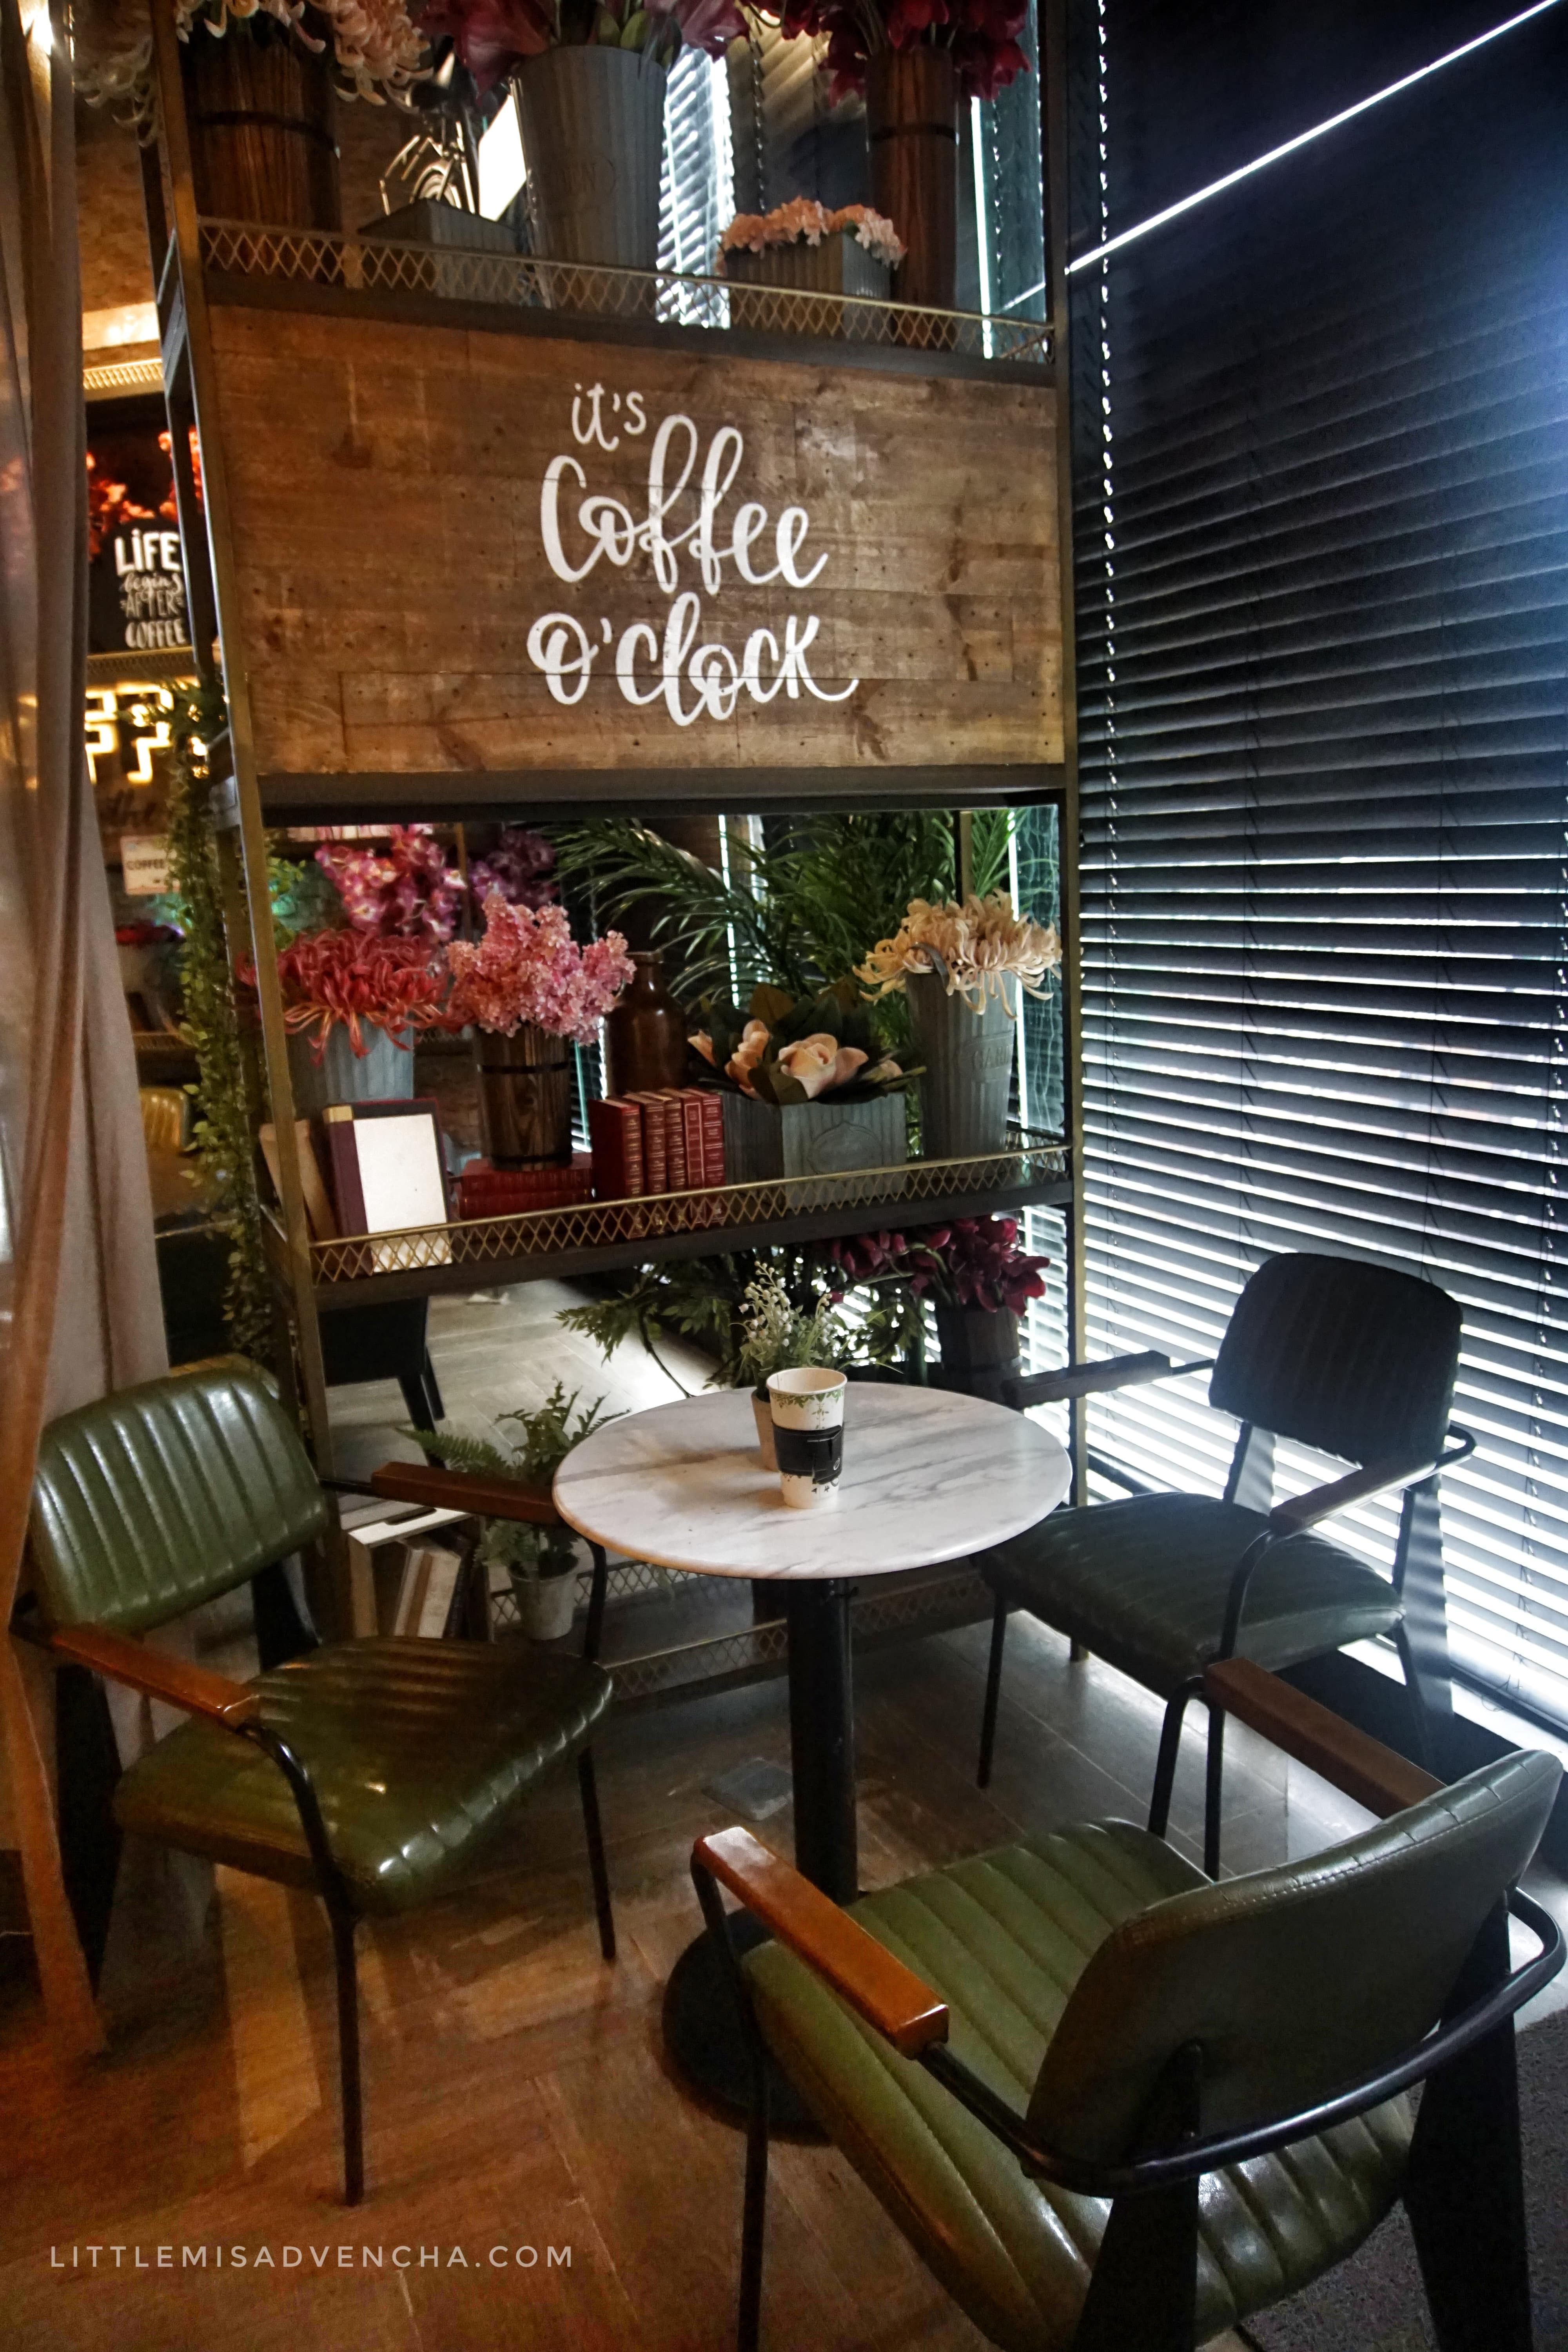 Sala Set For Sale In Iloilo City Coffee Project Iloilo A Look Inside Best Of Littlemisadvencha